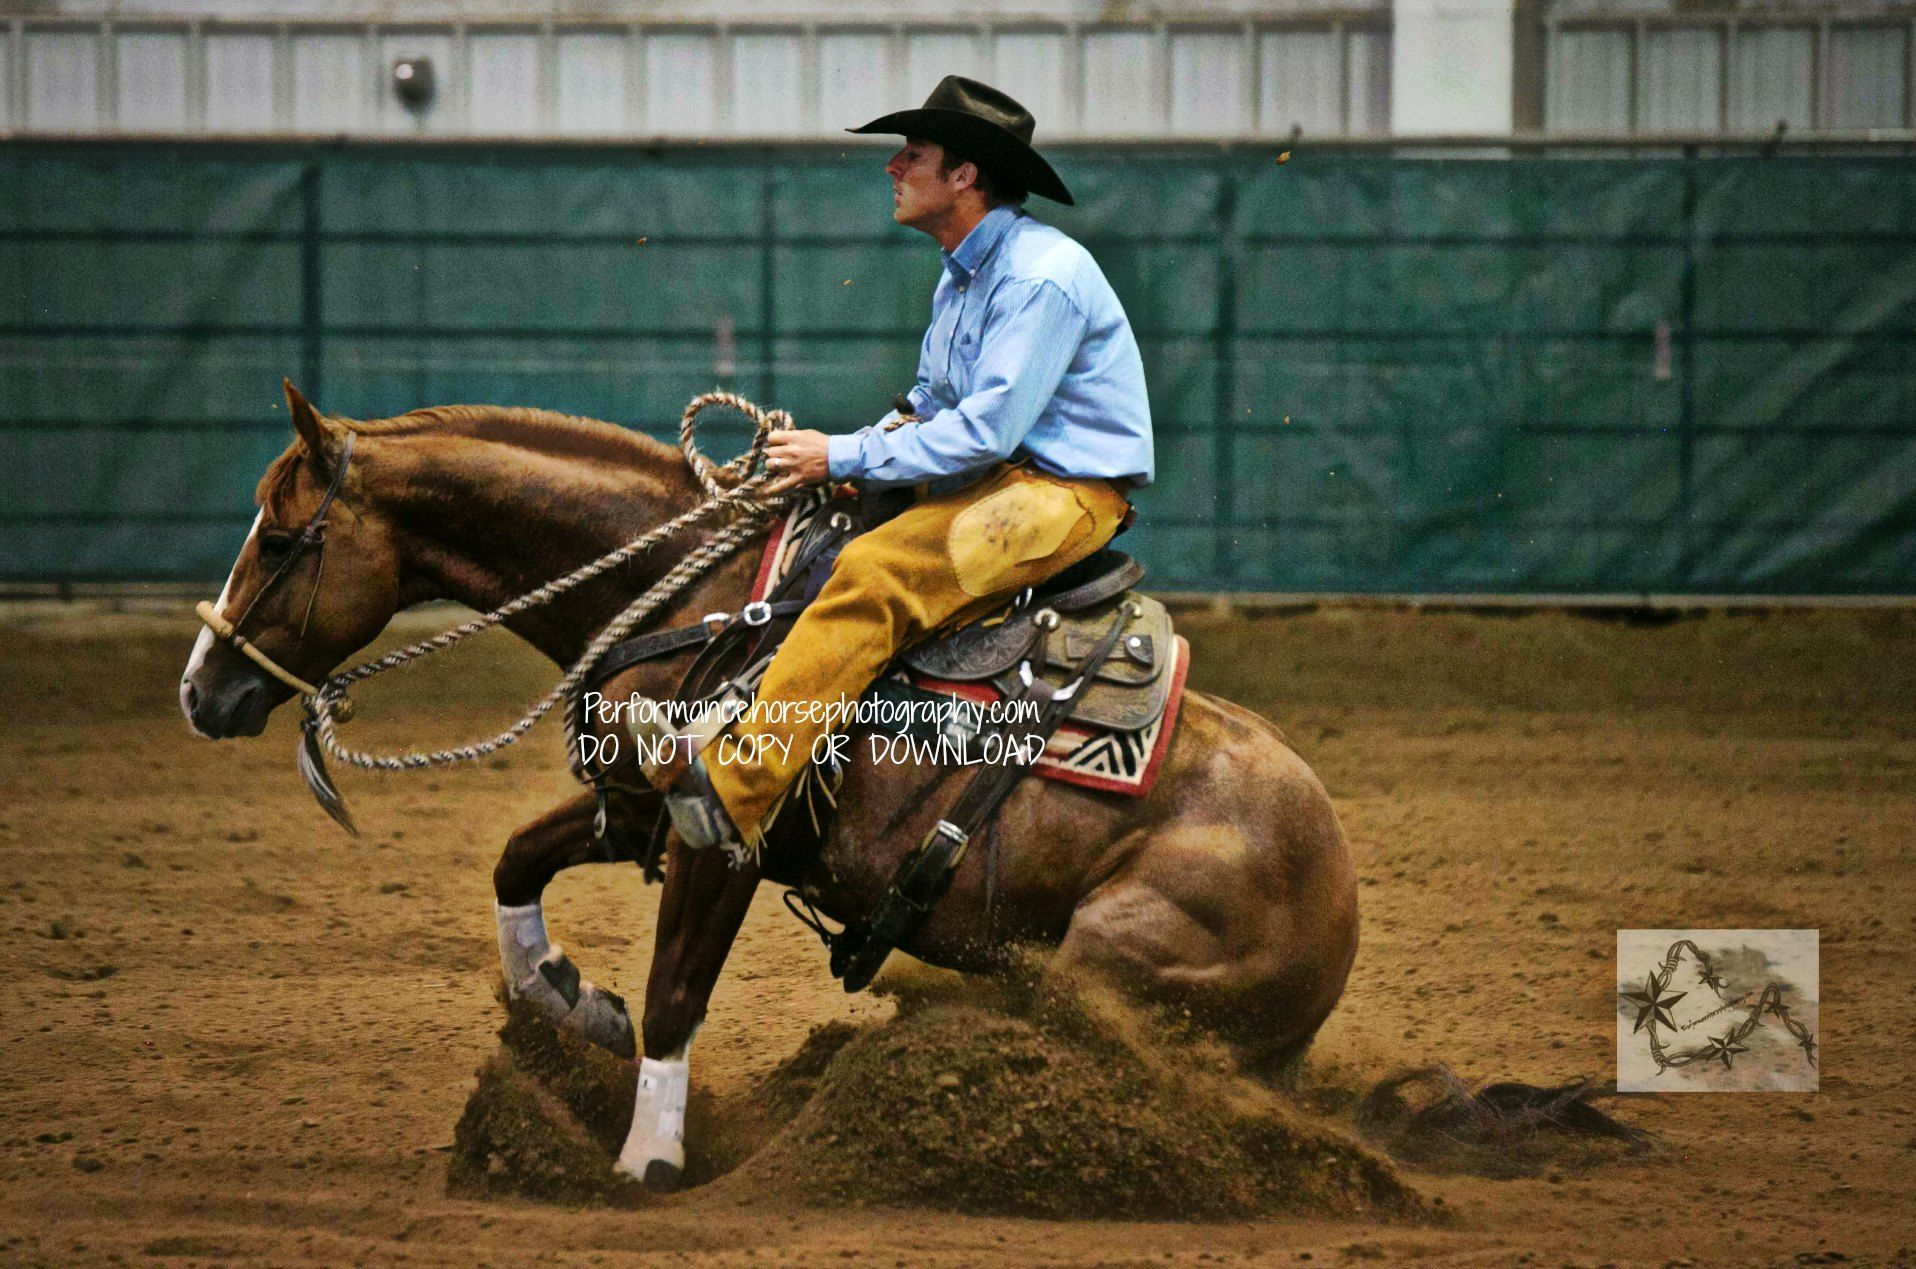 Reining Metallic Cat Image by Performancehorsephotography.com